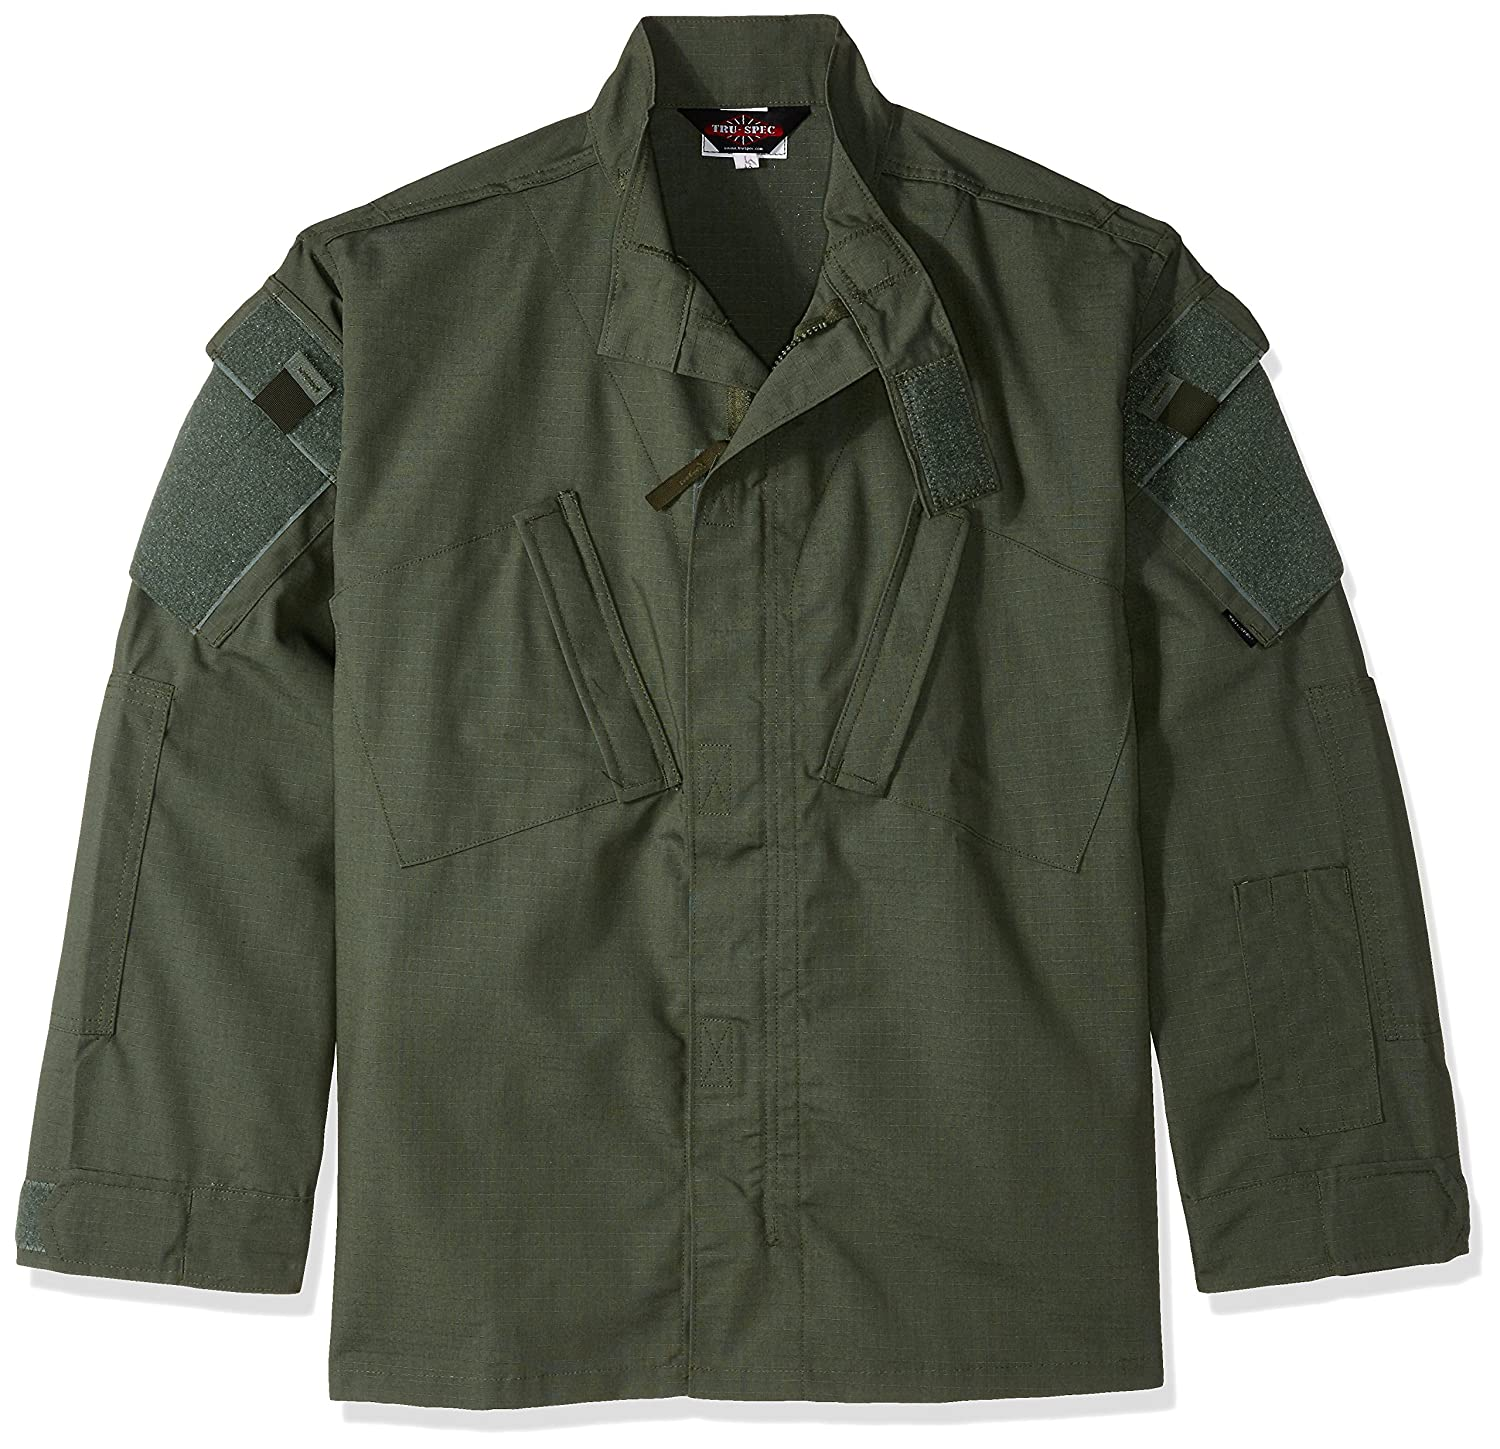 TRU-SPEC 1284044 Tactical Response Uniform Shirt, Polyester Baumwolle Rip-Stop, Medium kurz, Olive Drab